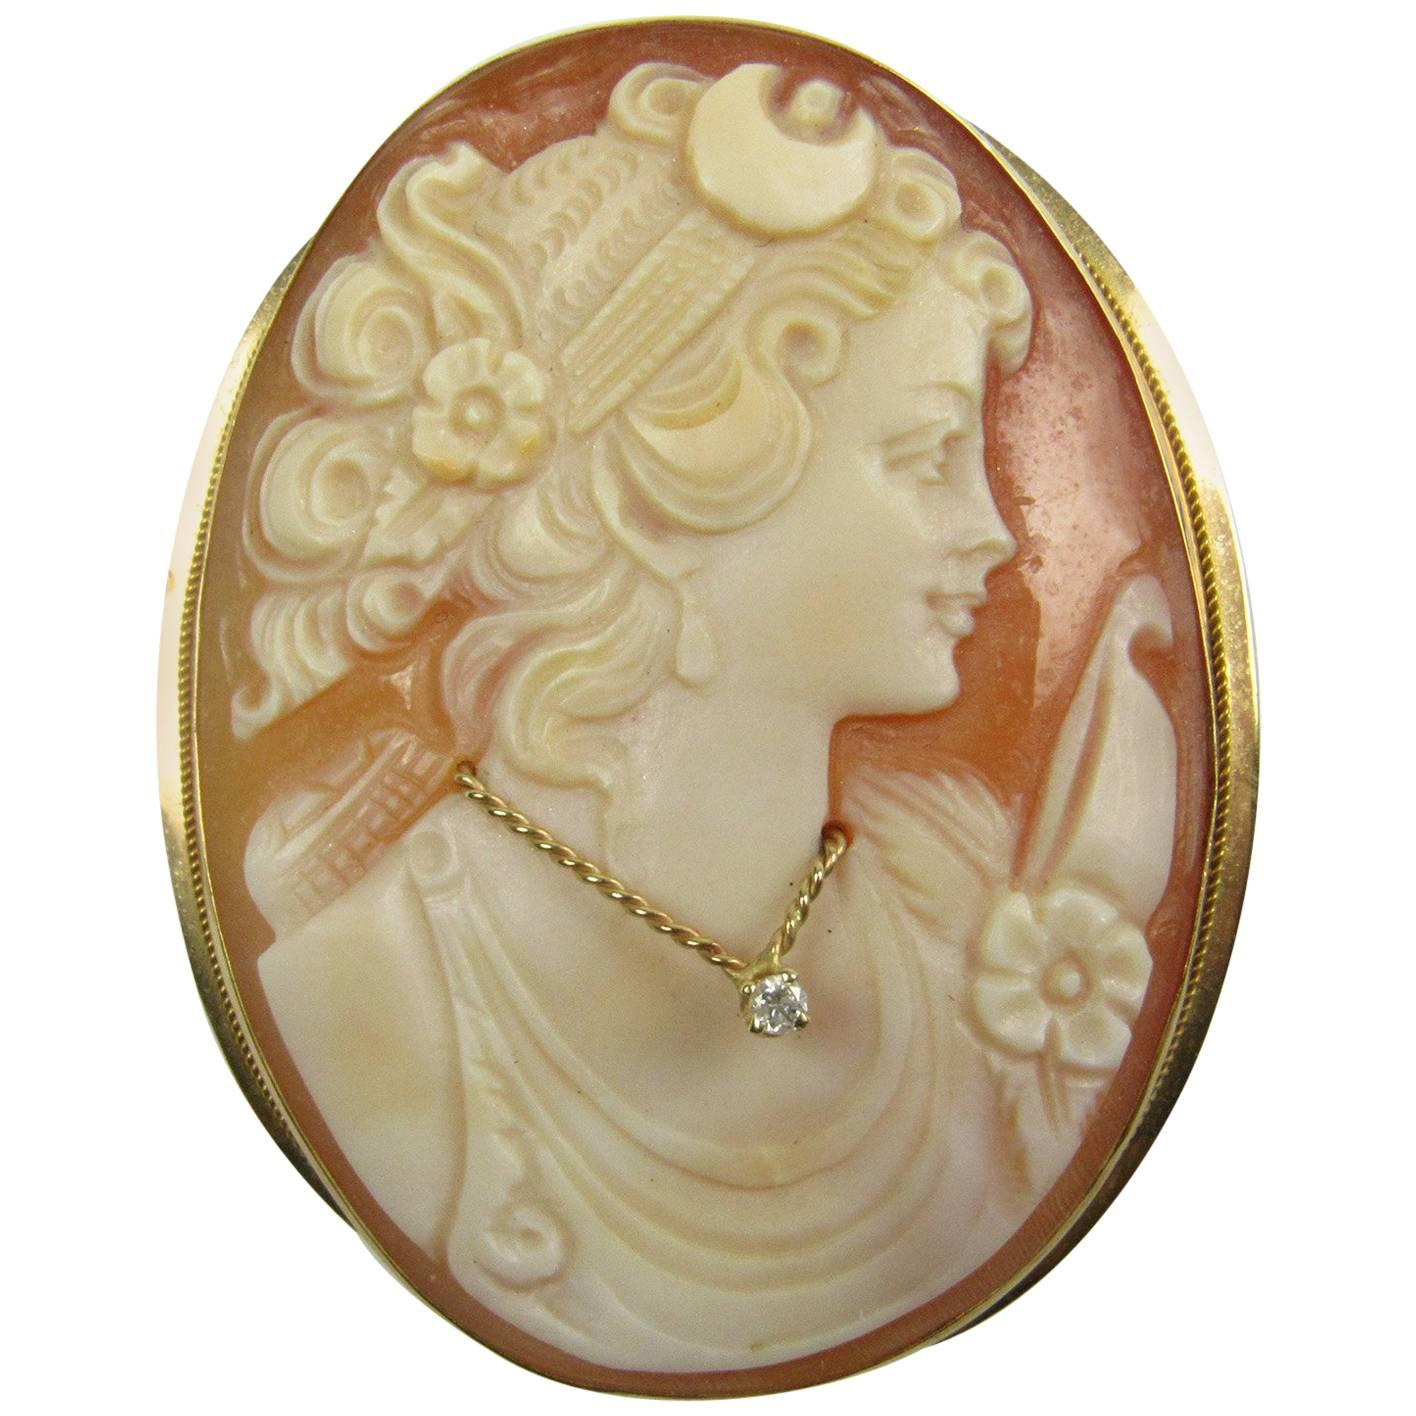 Neptune and Sea Dragon Shell Cameo Brooch For Sale at 1stdibs